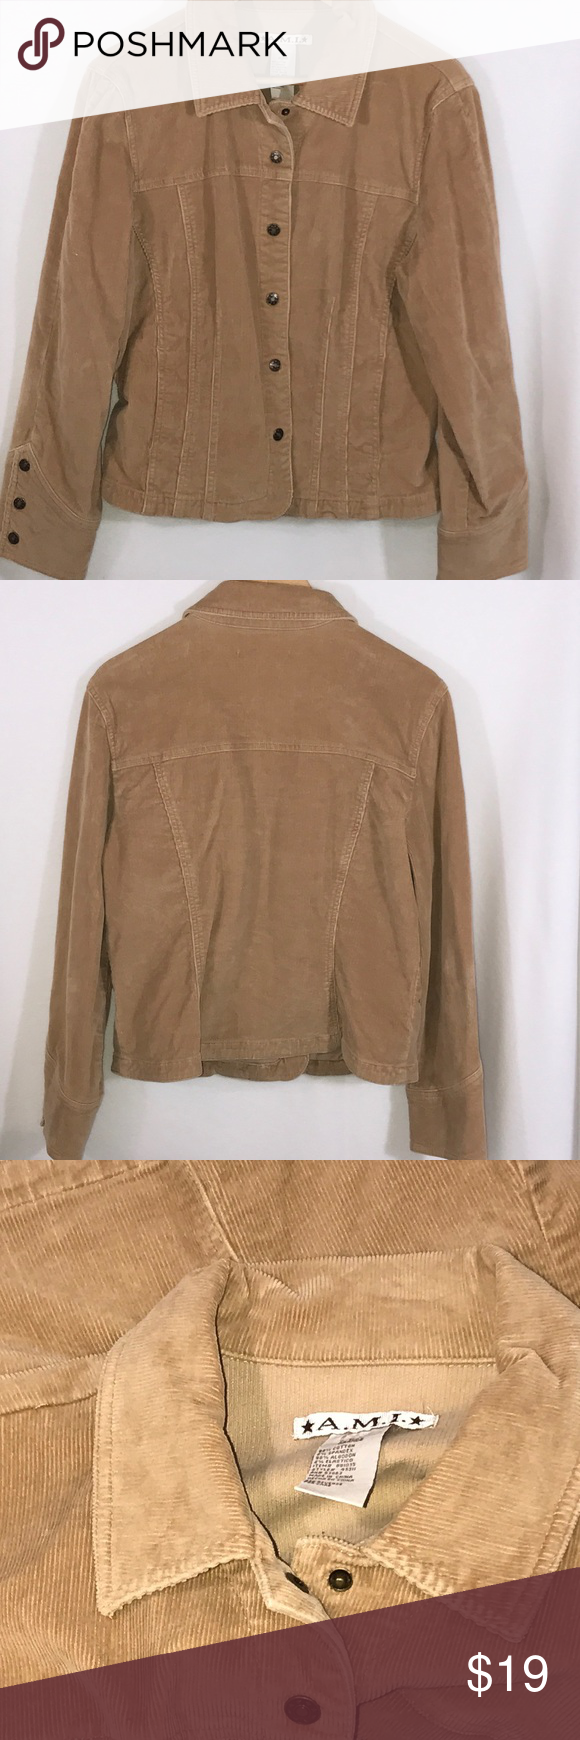 """💜 Tan Camel Corduroy Jean Jacket L Stretch Button Cute camel colored Stretch jacket, front pockets, snap front, 3 snap cuffs.  In excellent used condition. Pit to pit laying flat 21.5"""", length 22"""".   98% cotton/2% spandex. A.M.I. Jackets & Coats Jean Jackets"""